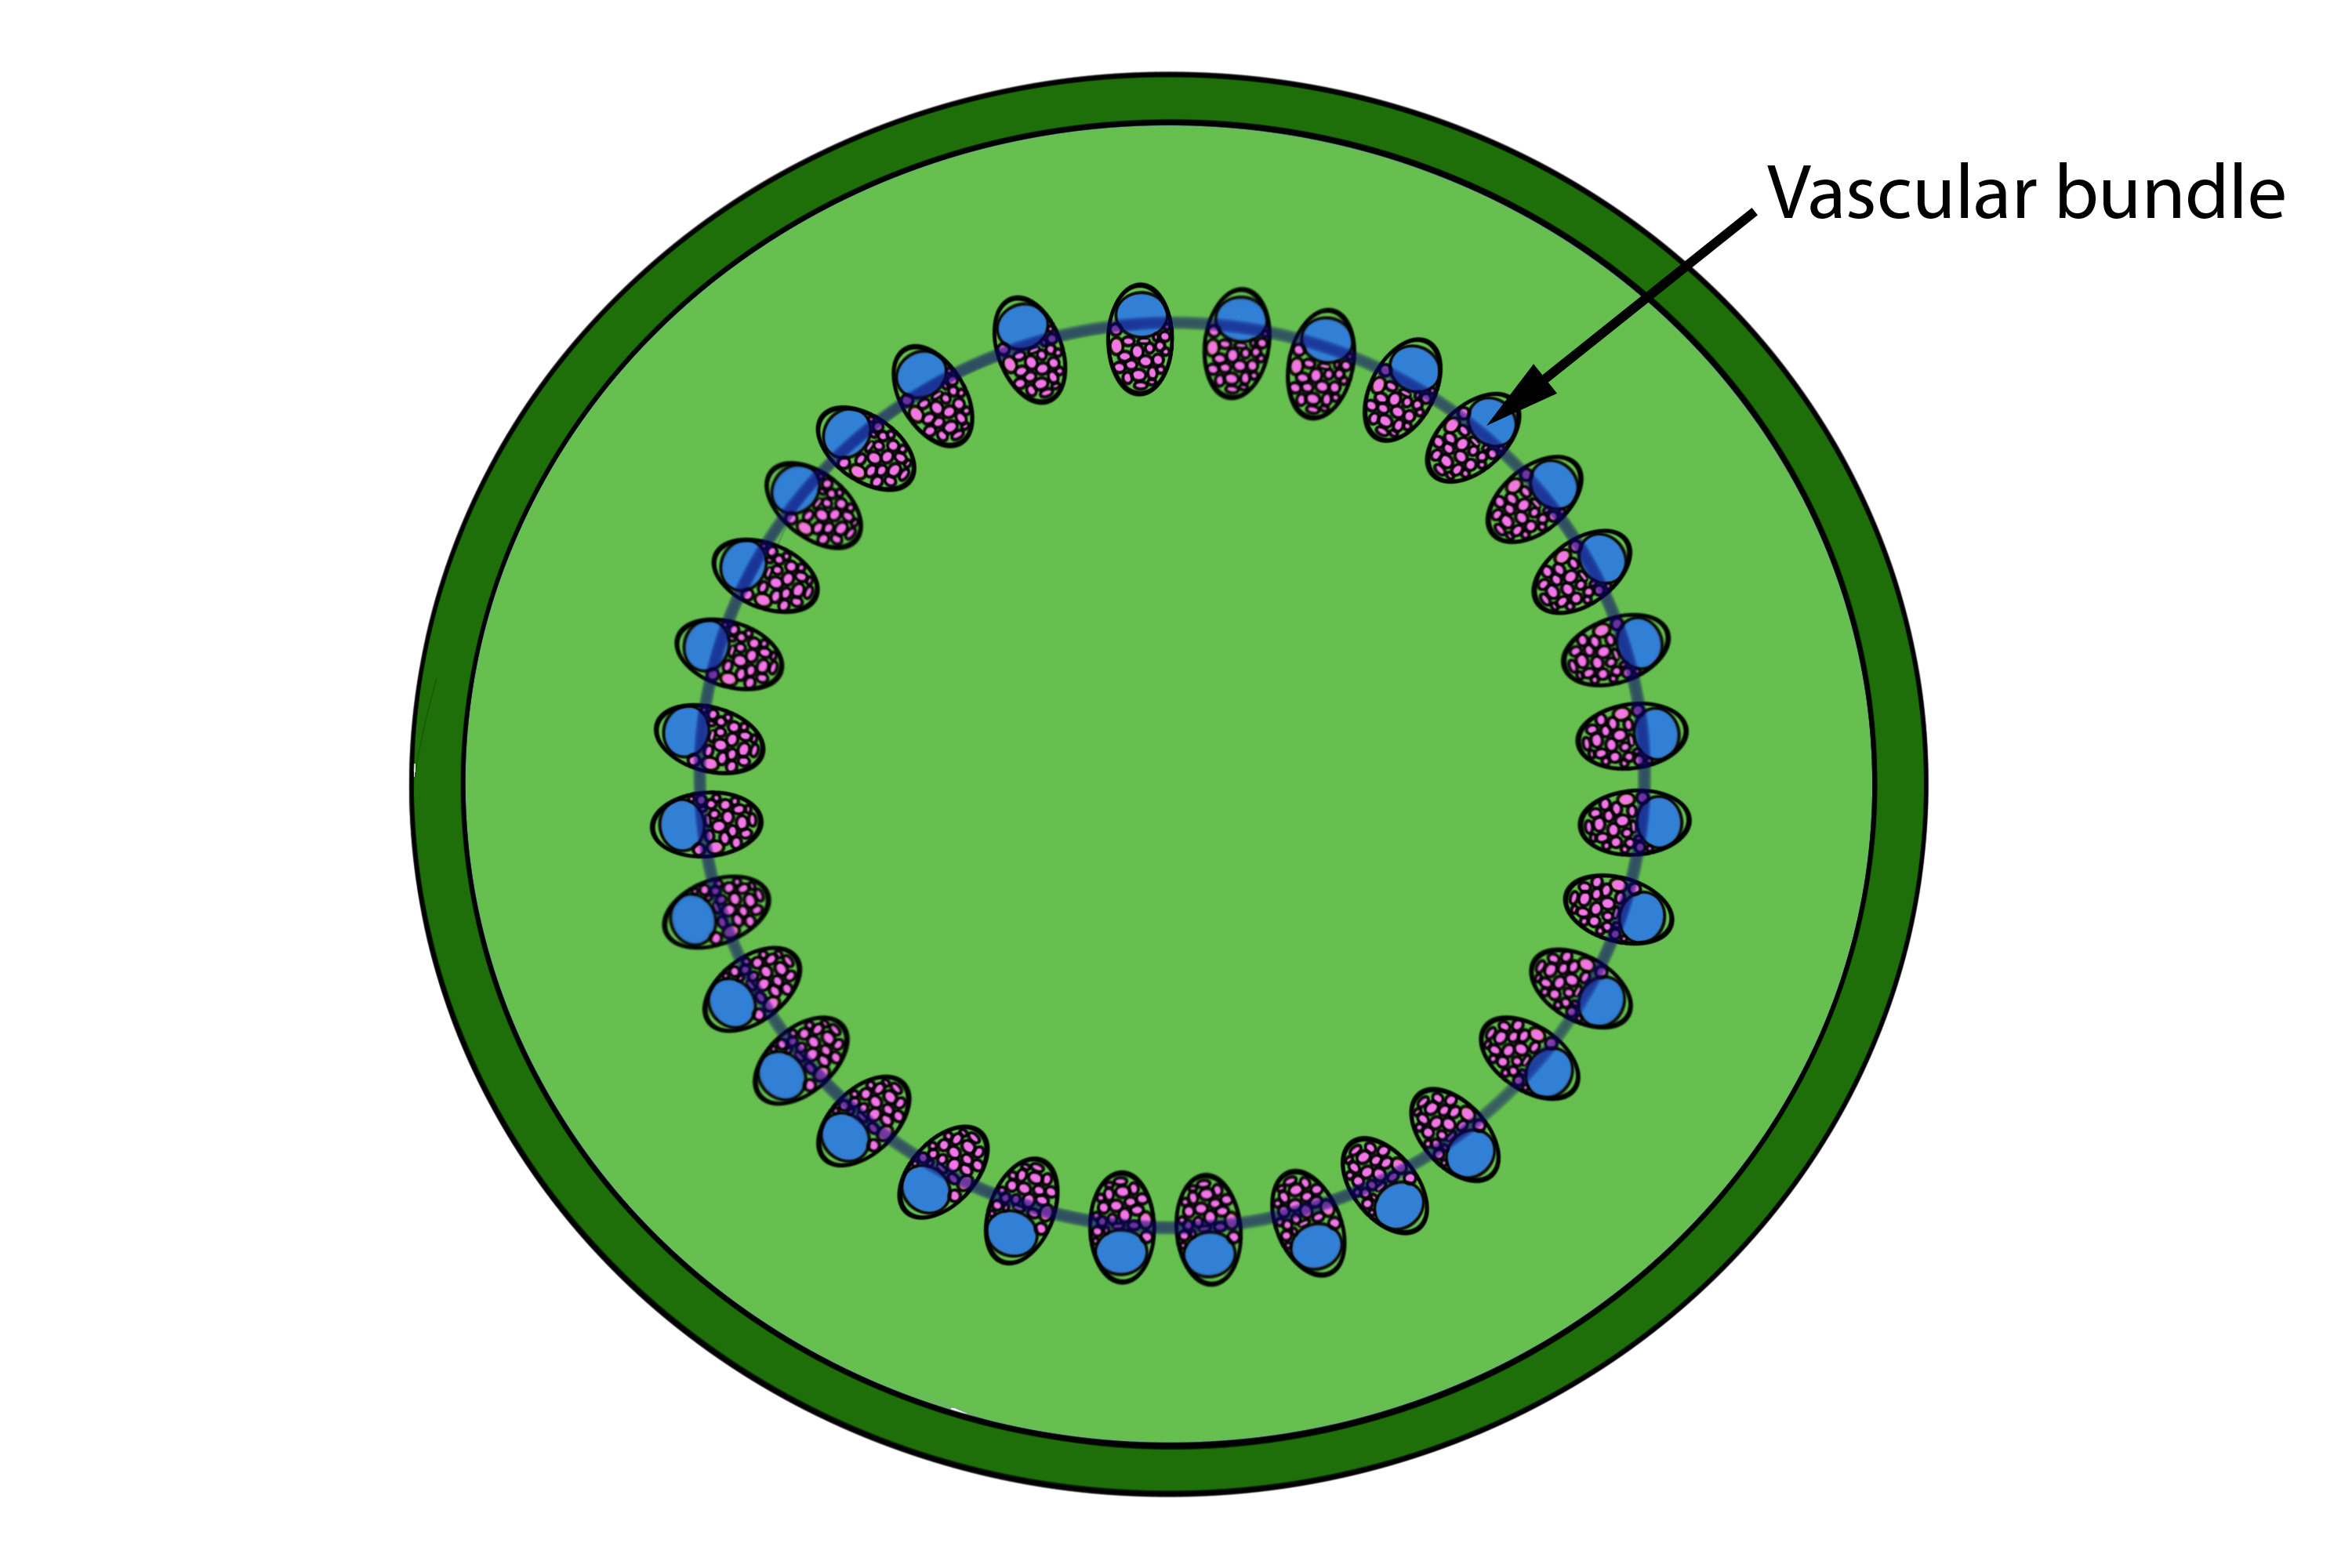 Mnemonic to remember the difference of stem vascular bundles